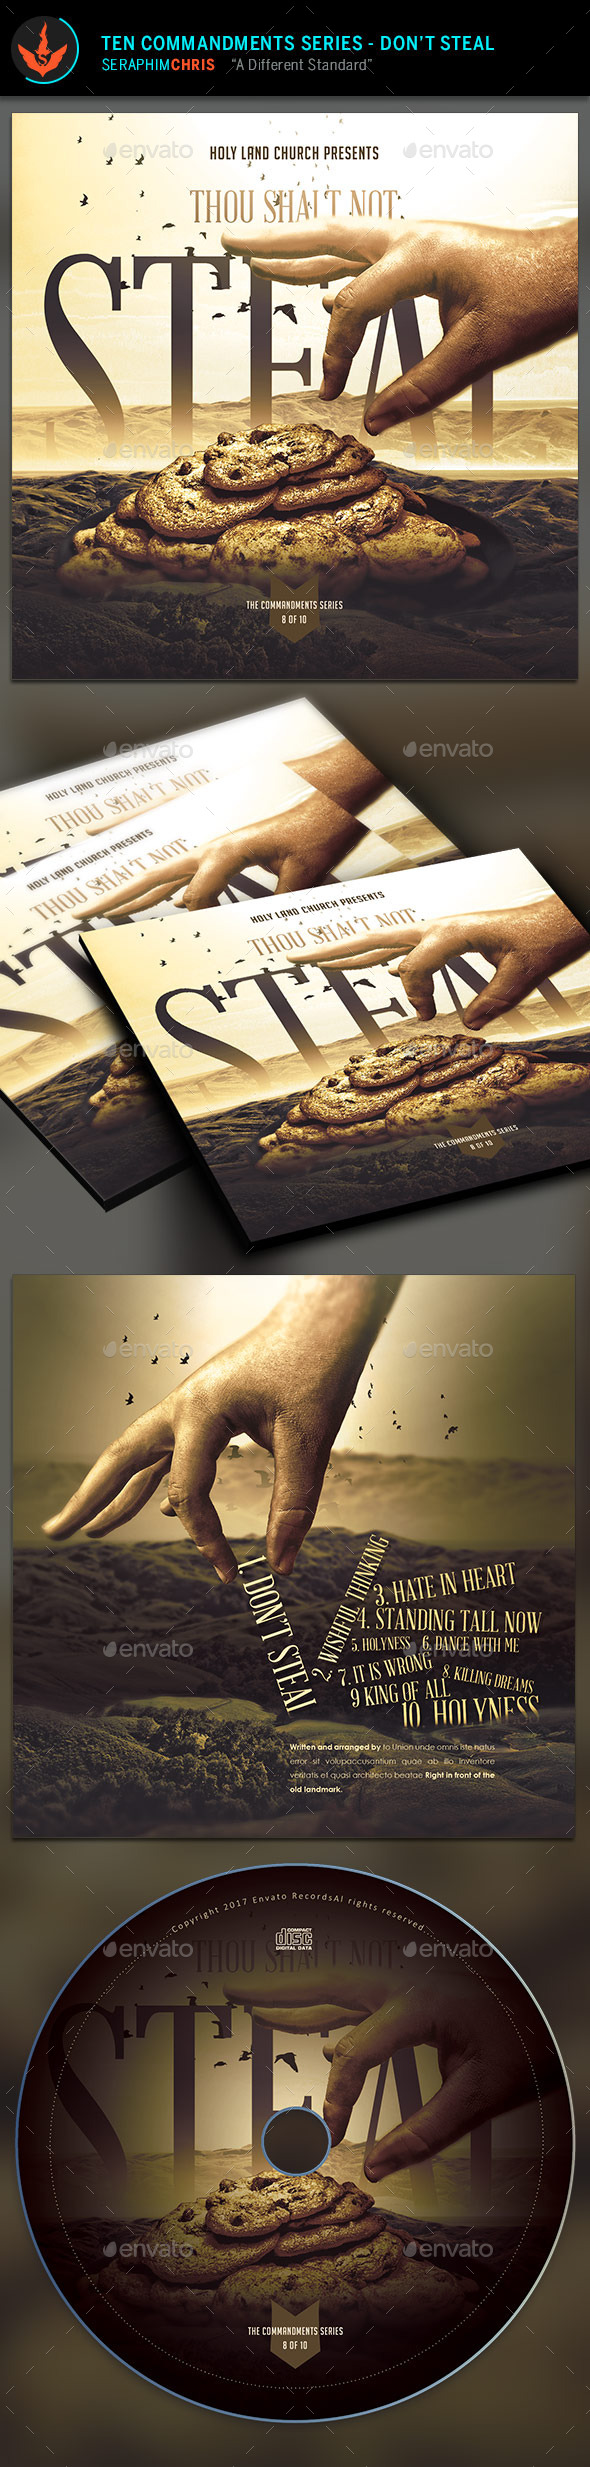 GraphicRiver Thou Shalt Not Steal CD Artwork Template 9723397